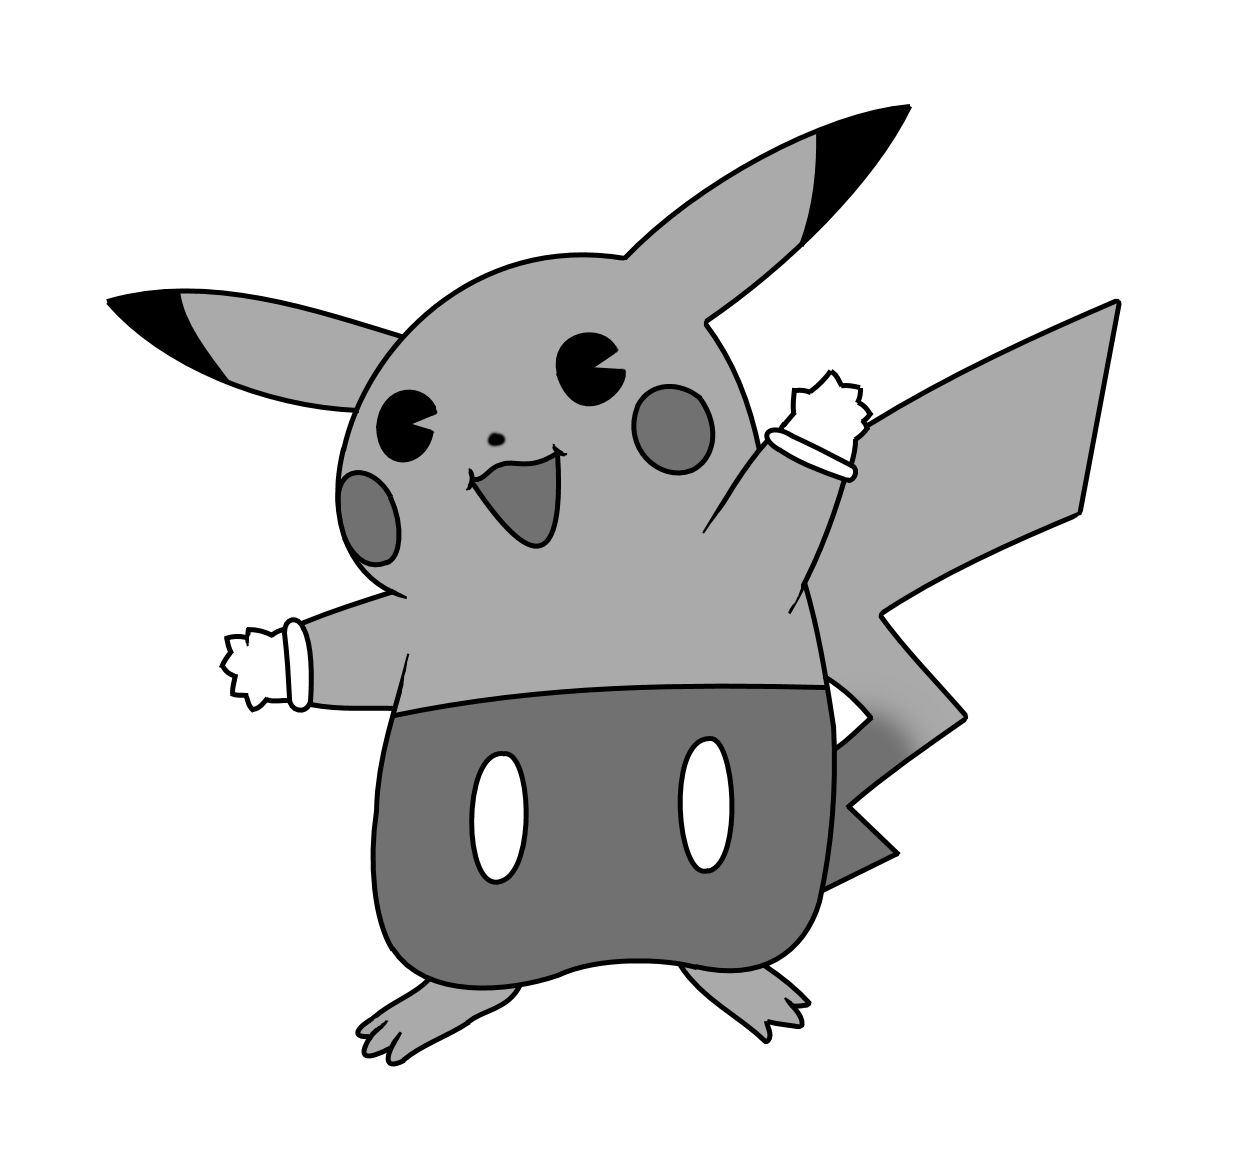 Pikartoon.png